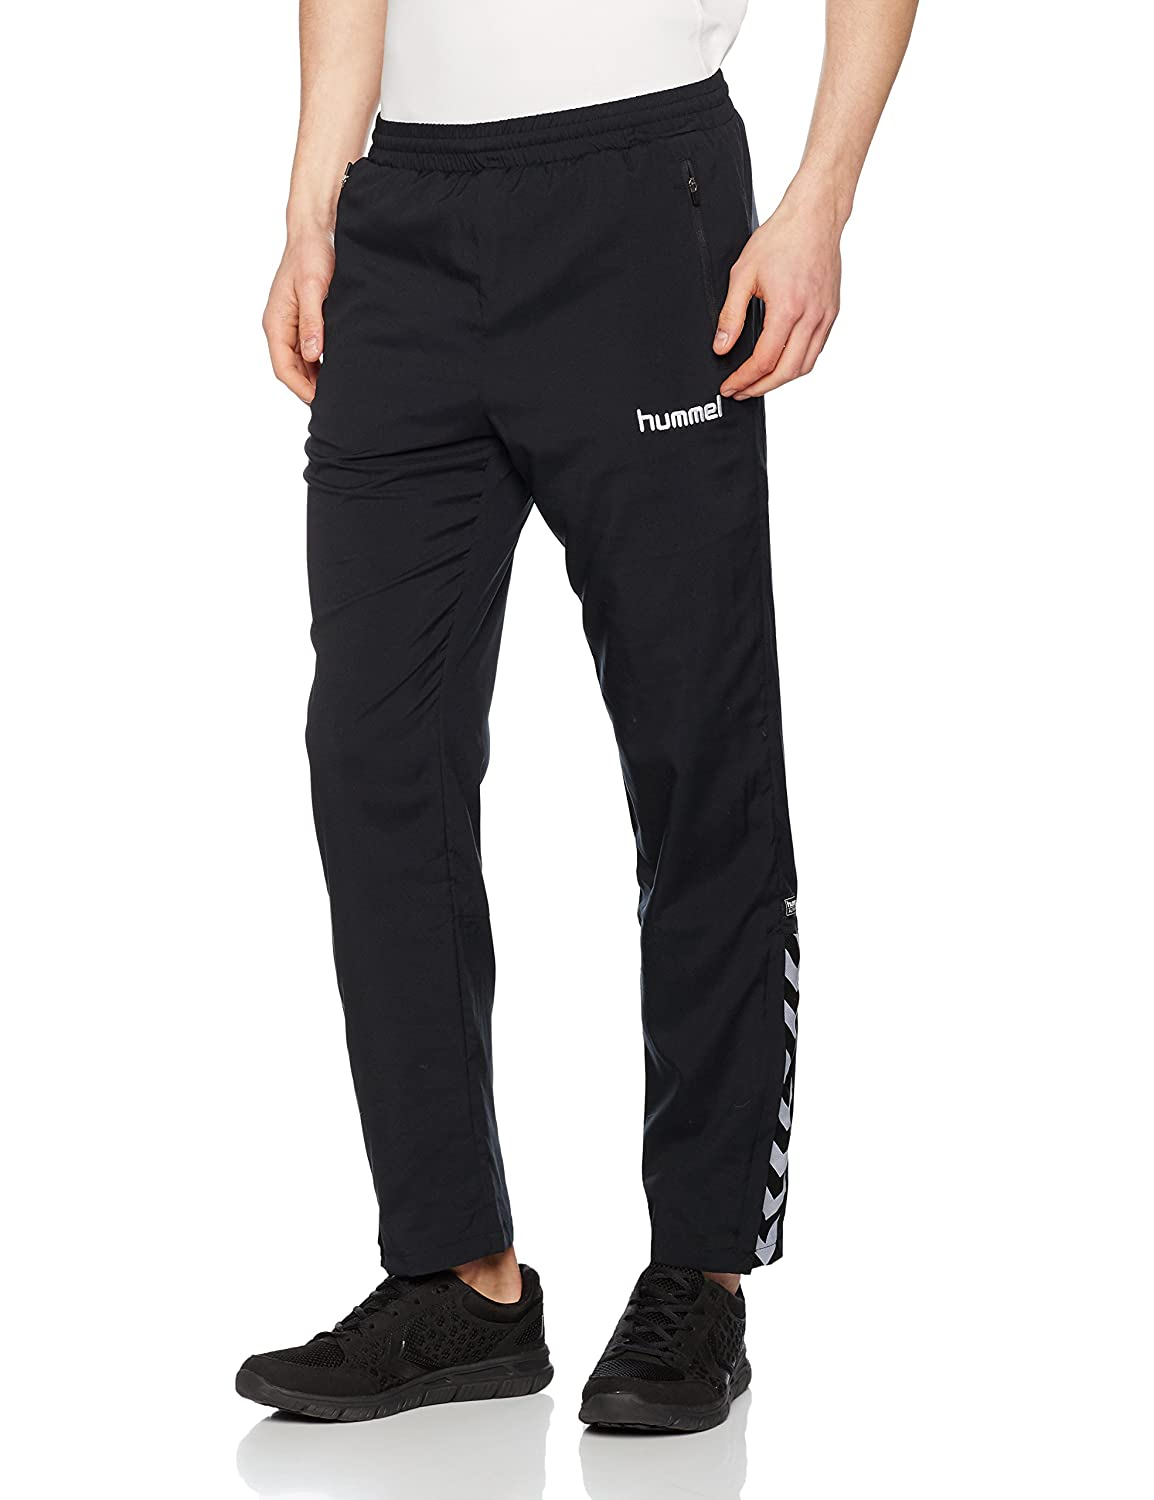 TALLA S. hummel AUTH Charge Micro Pant